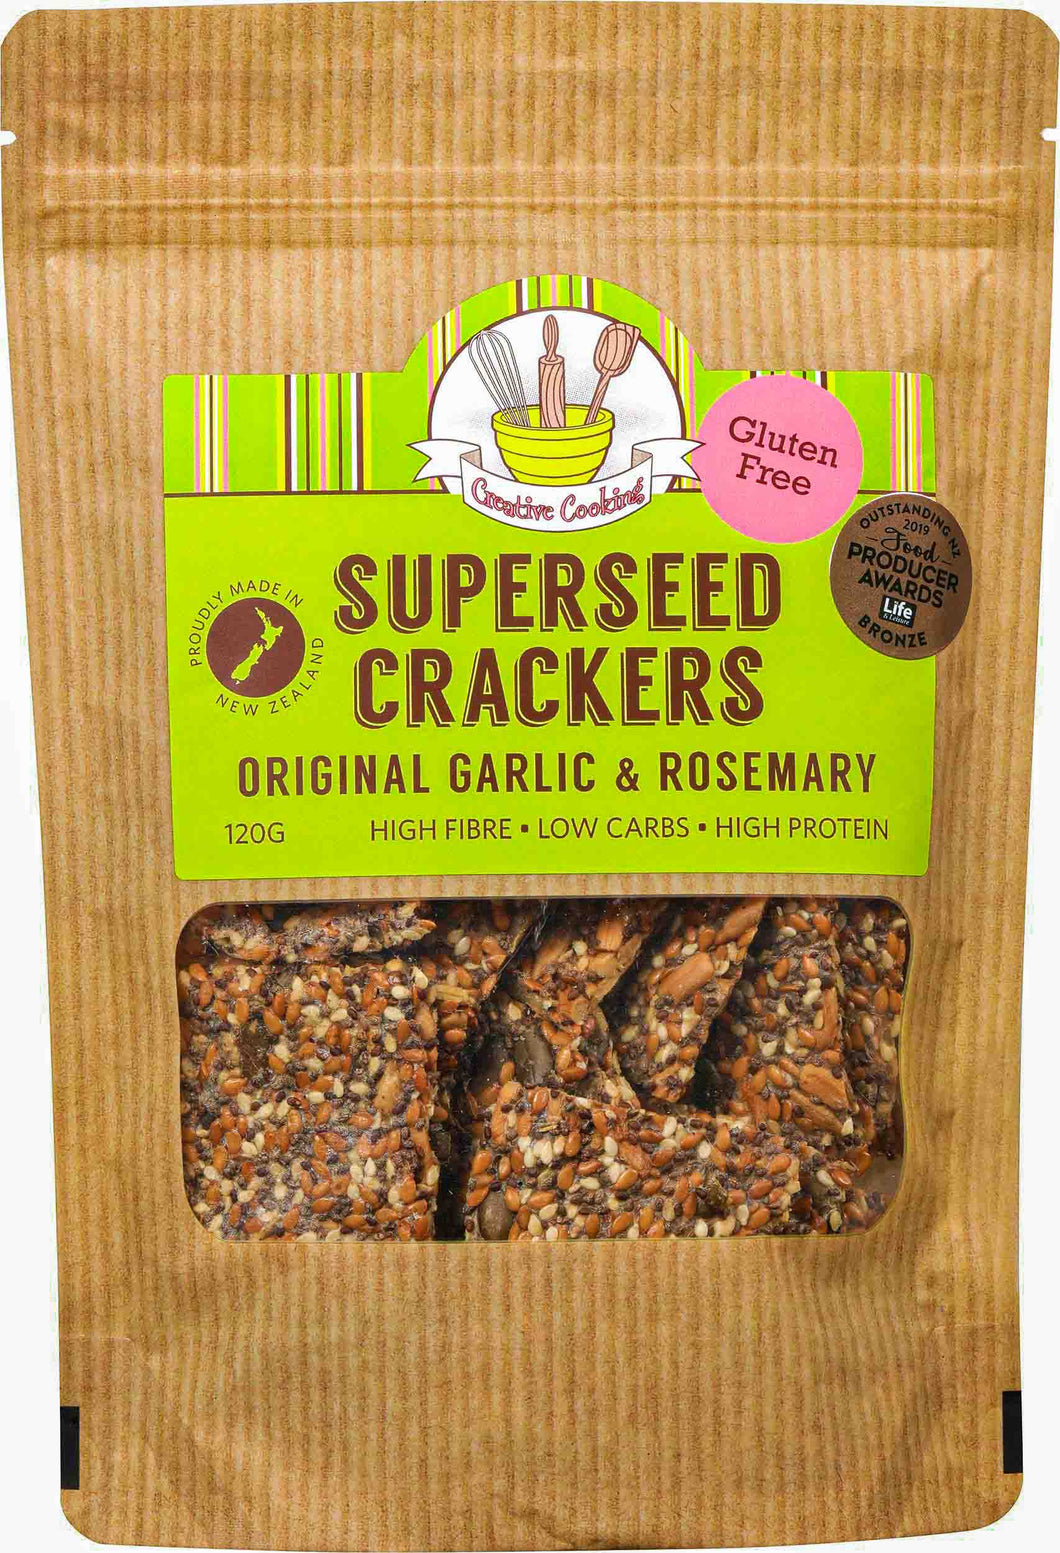 SUPERSEED CRACKERS